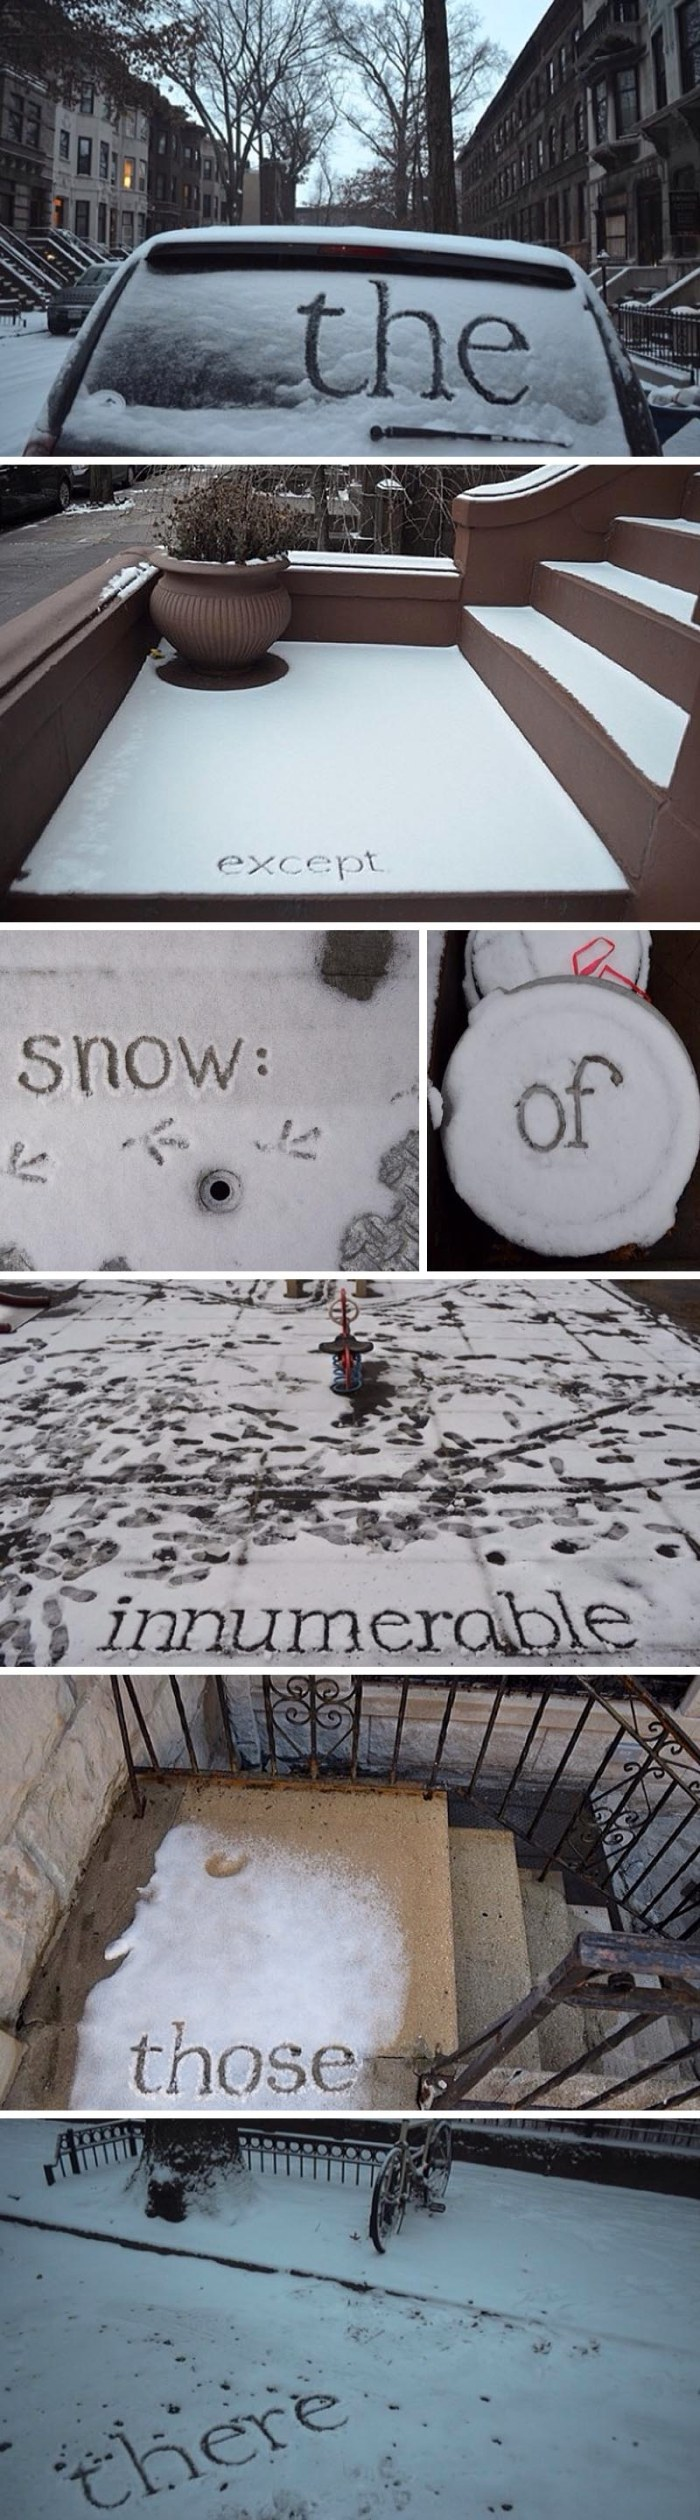 Shelley Jackson writes words in the snow to create a story on instagram, typography in snow, nyc